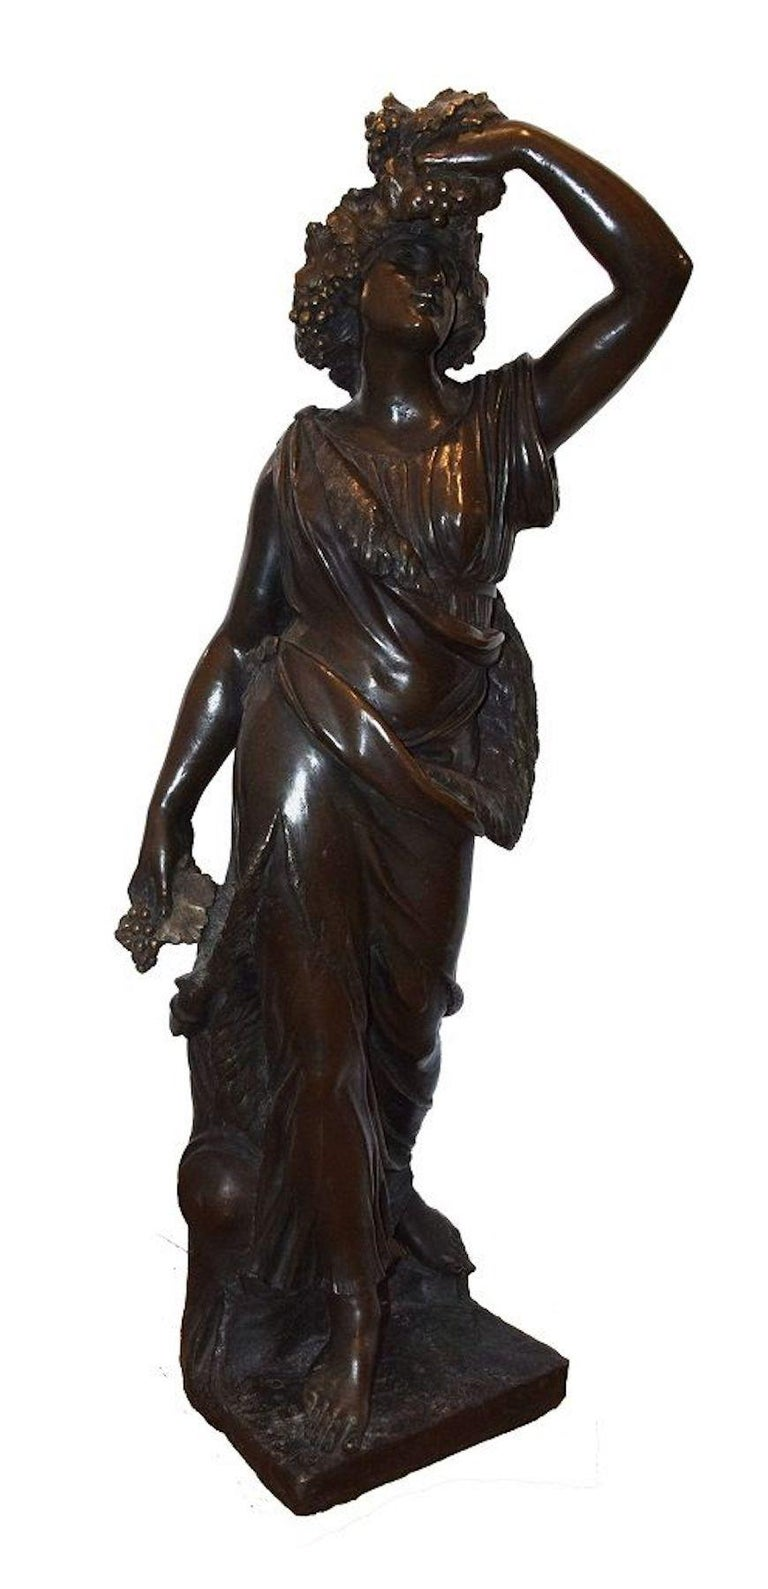 Follower of Bacchus is an original bronze sculpture realized by an Italian Sculptor in the end of the XIX century.  Bronze casting. Made in Italy.  Measures: H 100 cm.  Excellent conditions.  Beautiful and precious work of art realized in